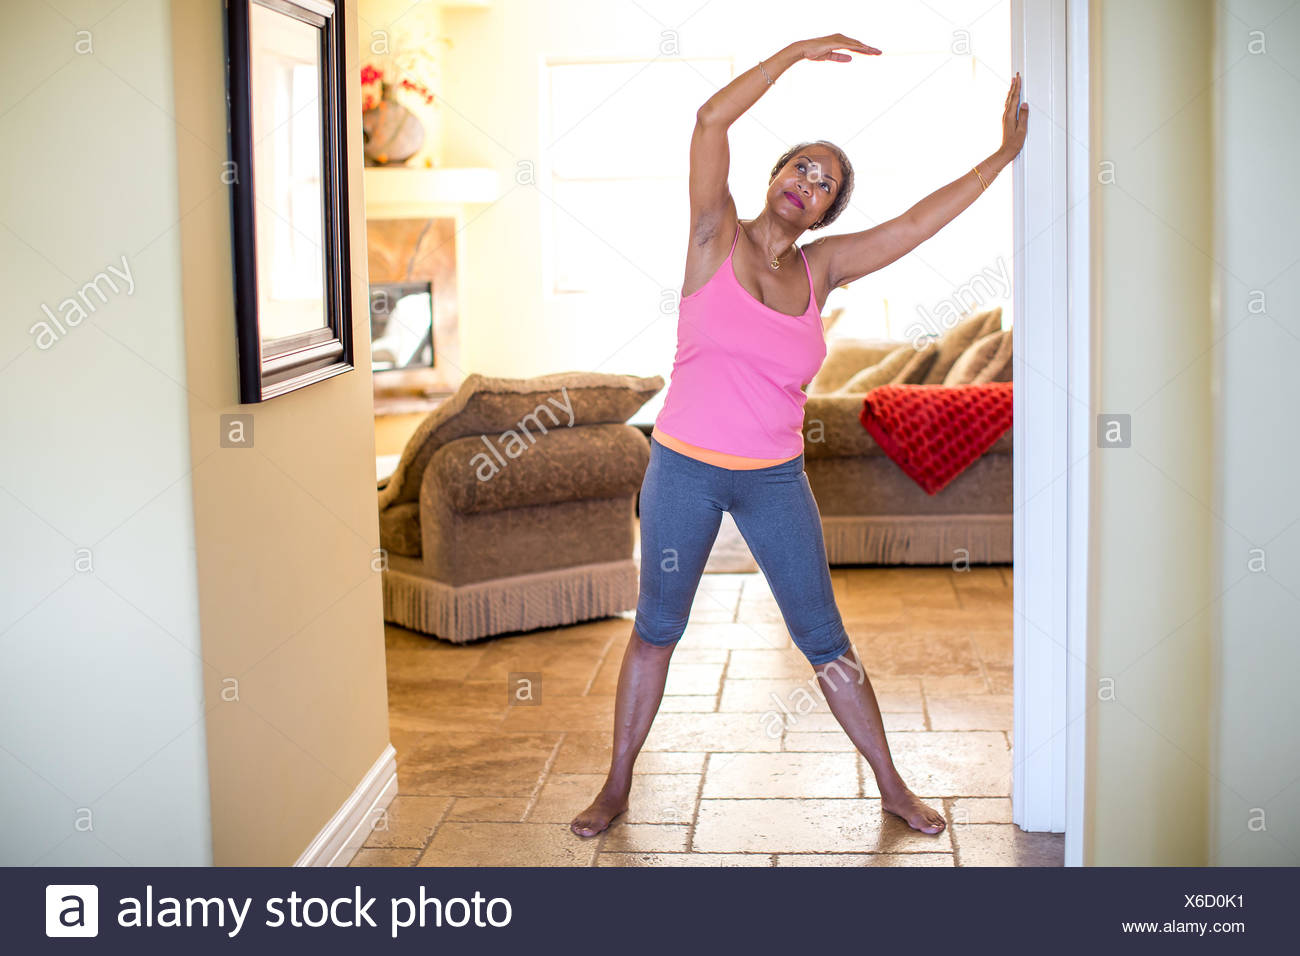 Woman with arms raised doing stretching exercise - Stock Image